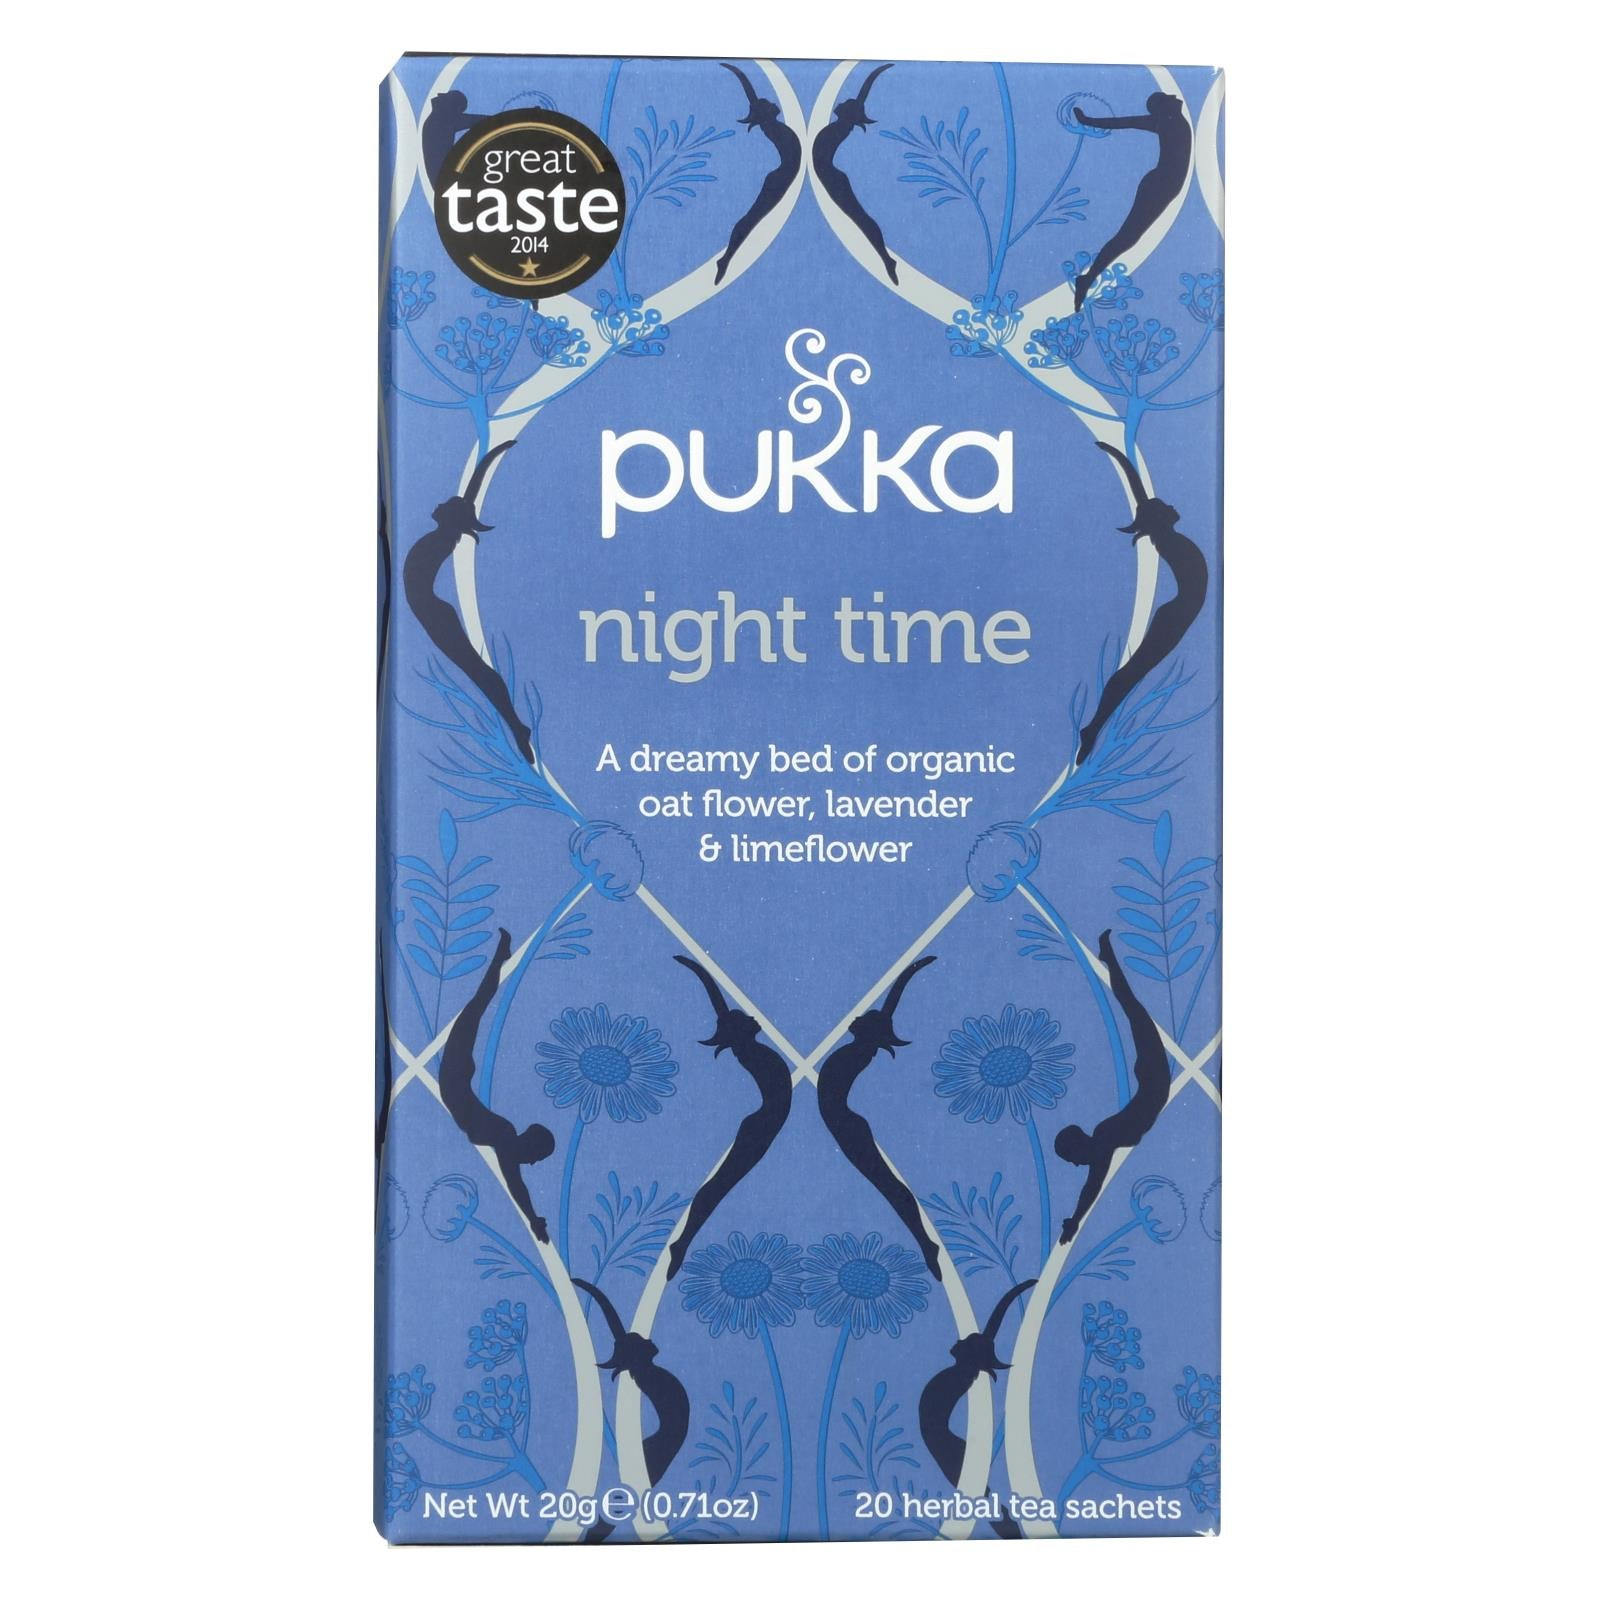 Buy Pukka Herbal Teas Tea - Organic - Night Time - 20 Bags - Case of 6 - Wellness Tea from Veroeco.com